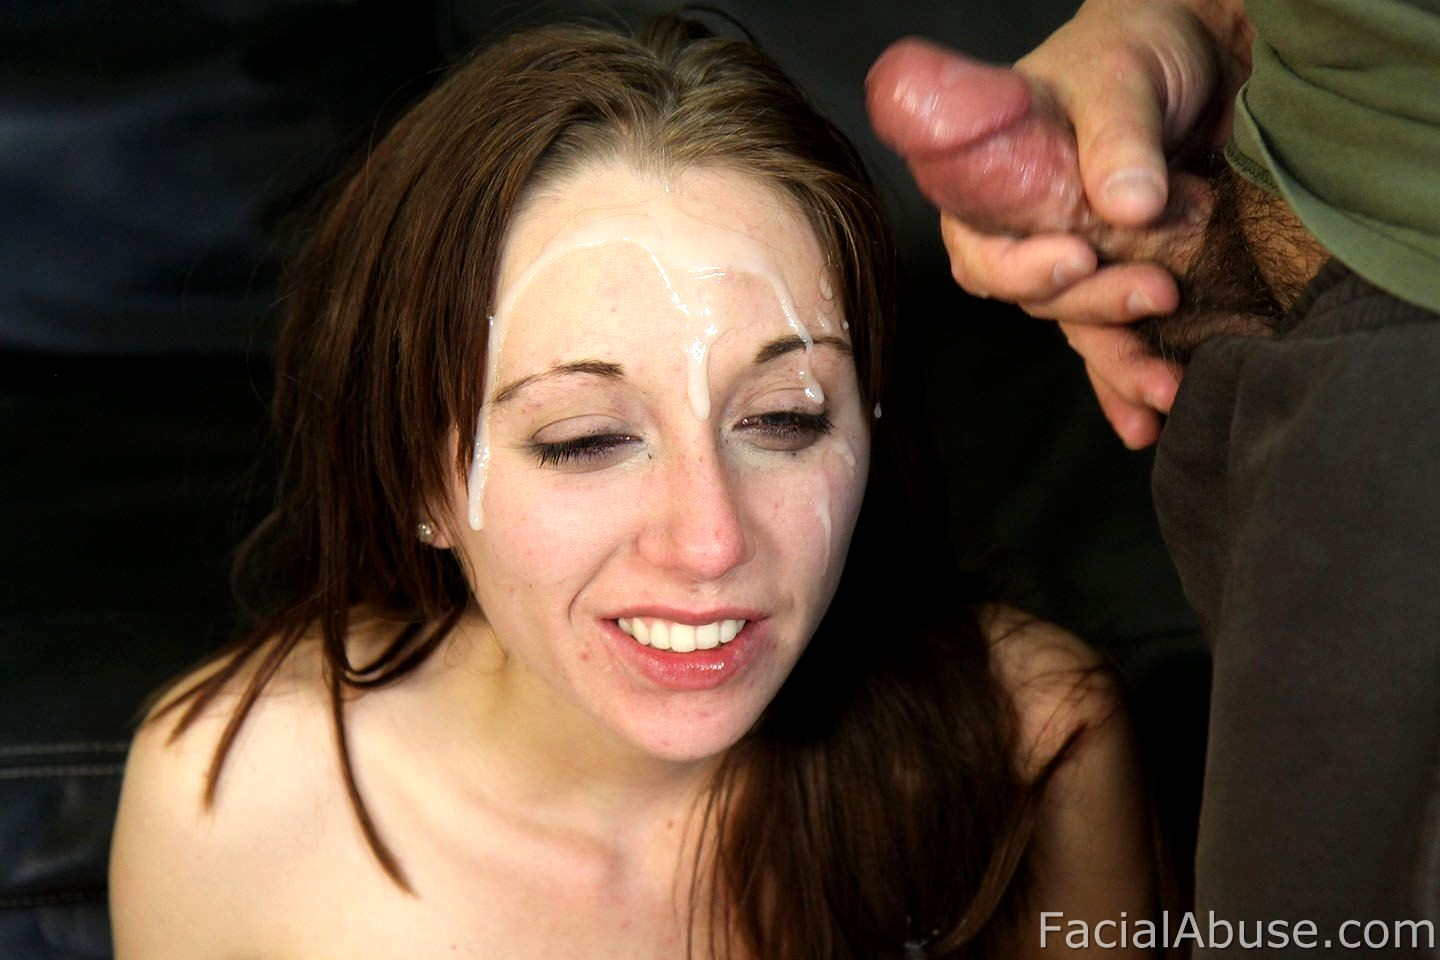 Nudeass facial abuse free video